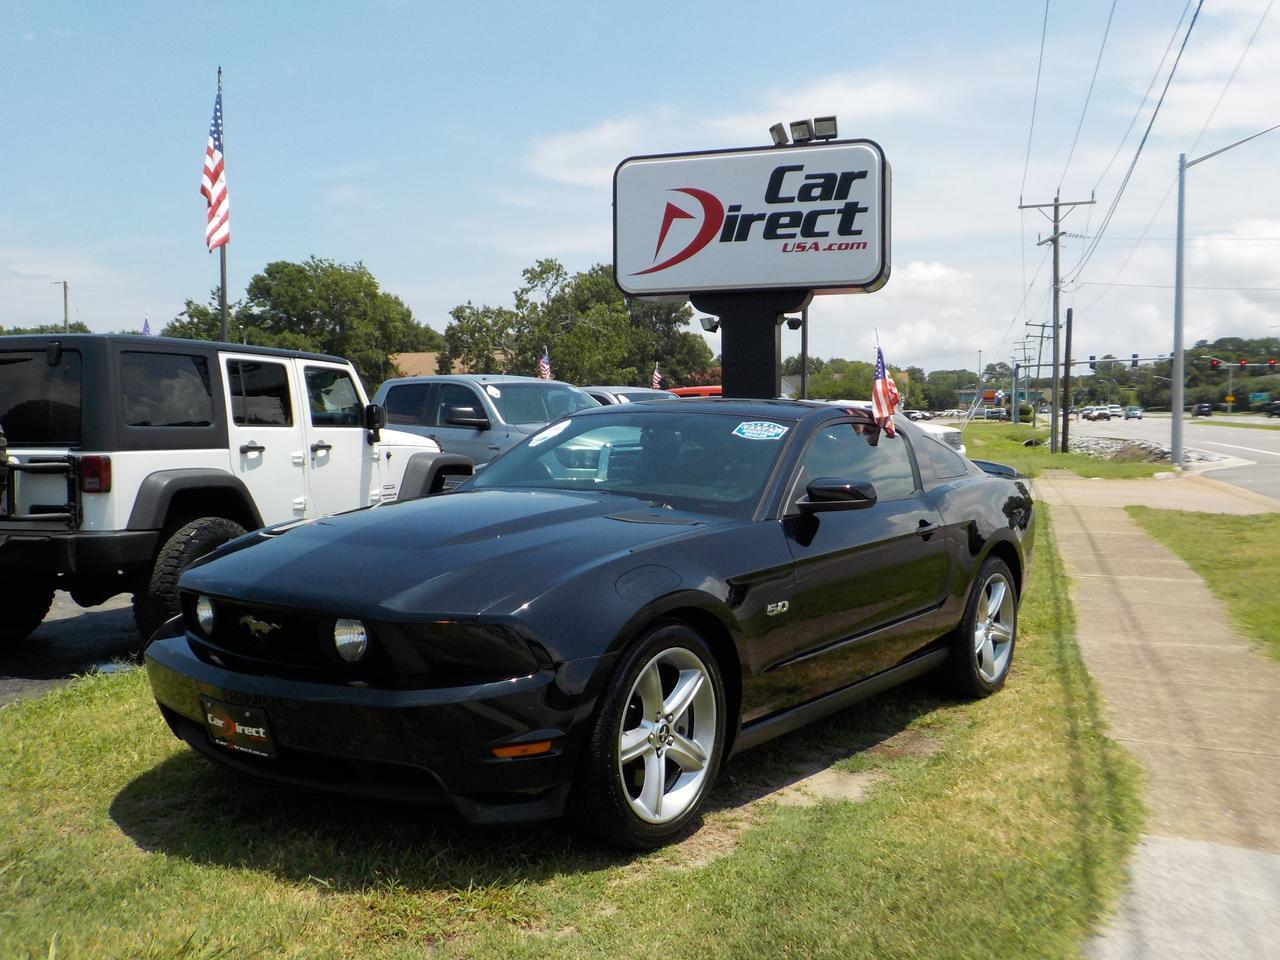 2012 ford mustang gt coupe 5 0 warranty manual leather shaker stereo system bluetooth backup camera